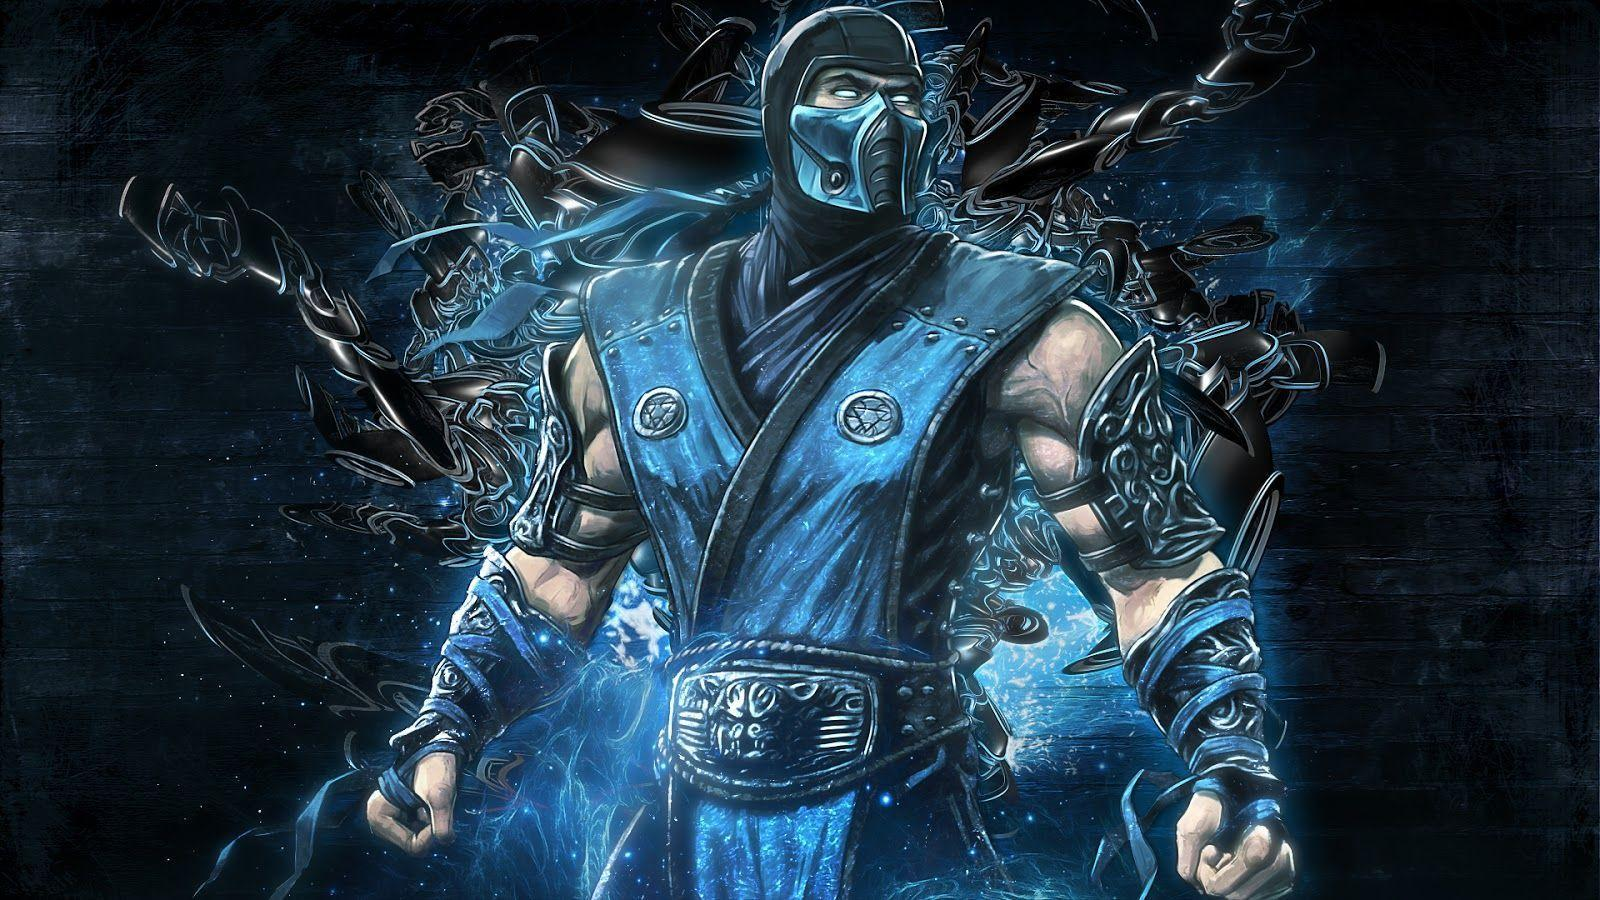 Image For > Mortal Kombat 9 Scorpion Fatality Wallpapers